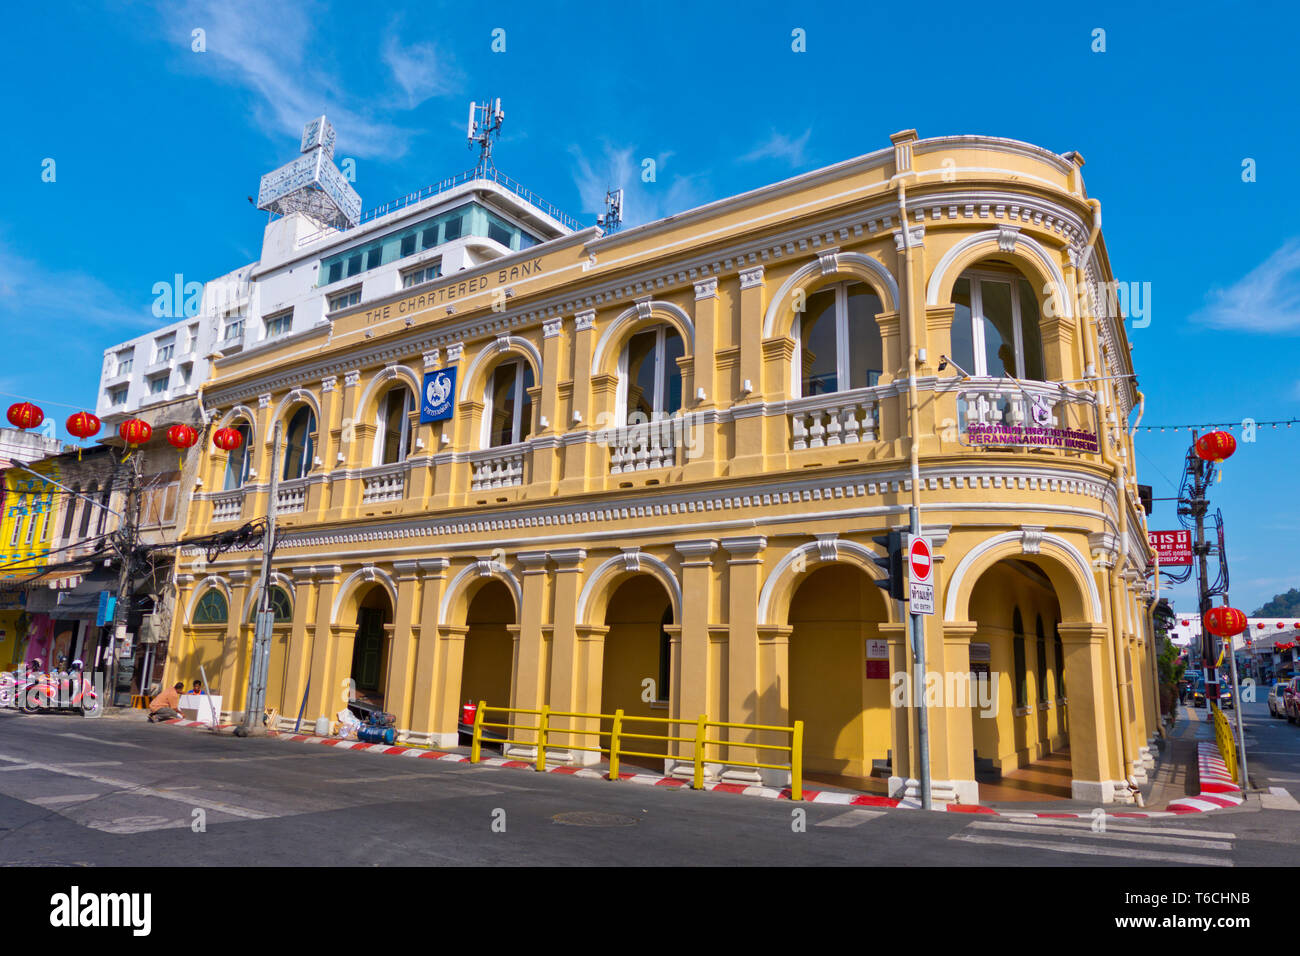 The Chartered bank, in Sino-Portuguese style, houses Peranakannitat Museum, old town, Phuket town, Thailand Stock Photo